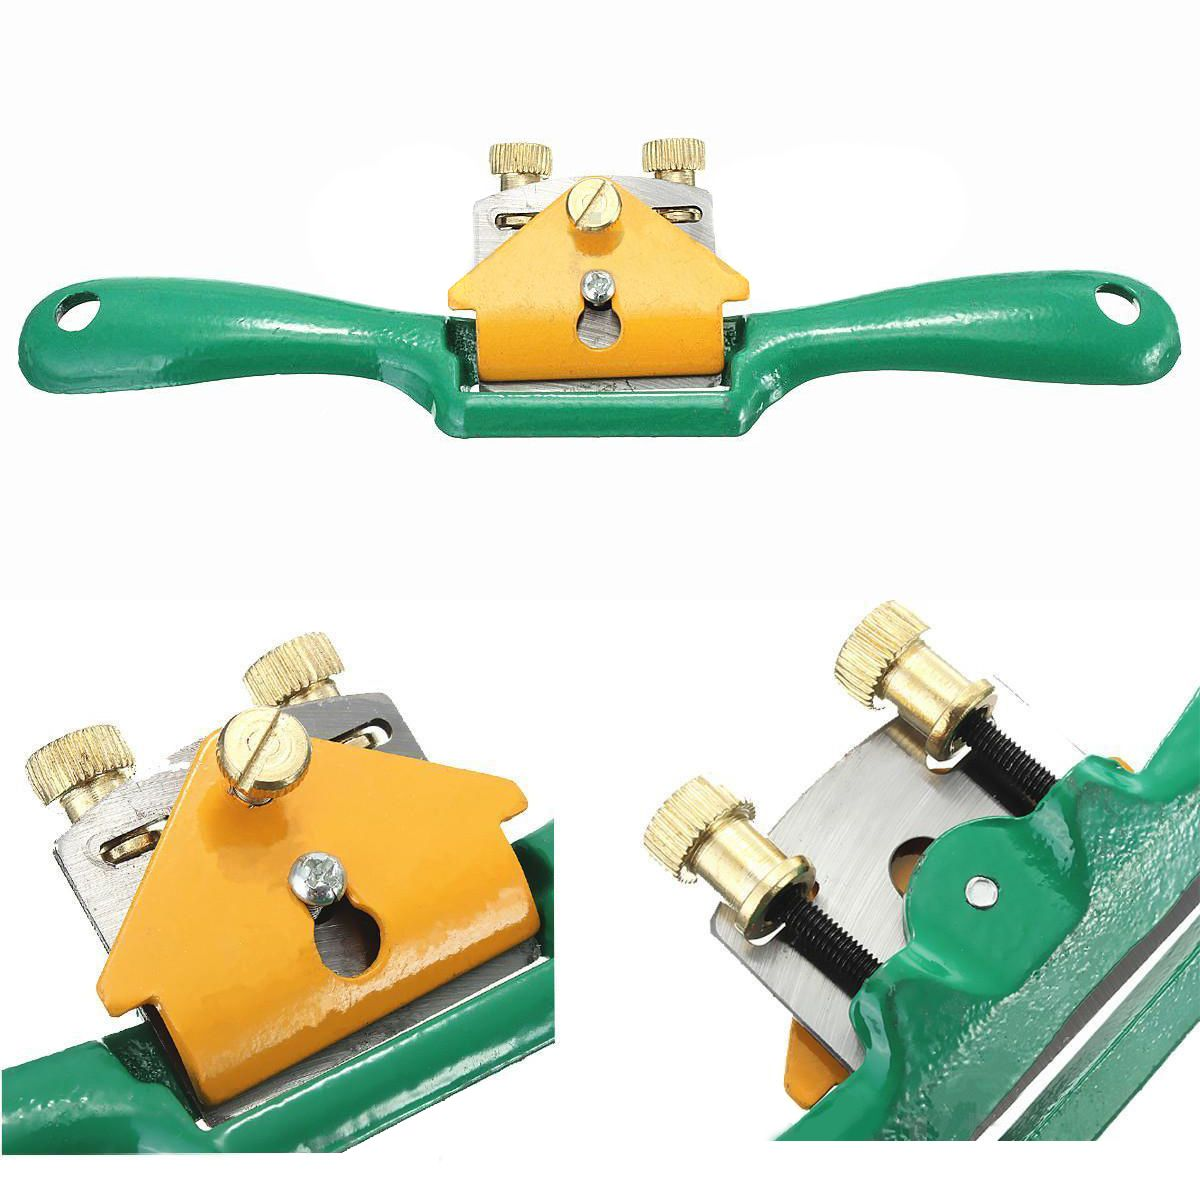 2017 Iron Spoke Shave Plane Mayitr Metal Cutting Edge Wood Shaping For Woodworker Woodworking Machinery 44mm high quality metal blade spoke shave plane adjustable wood craft spoke shave plane for woodworking hand tools new